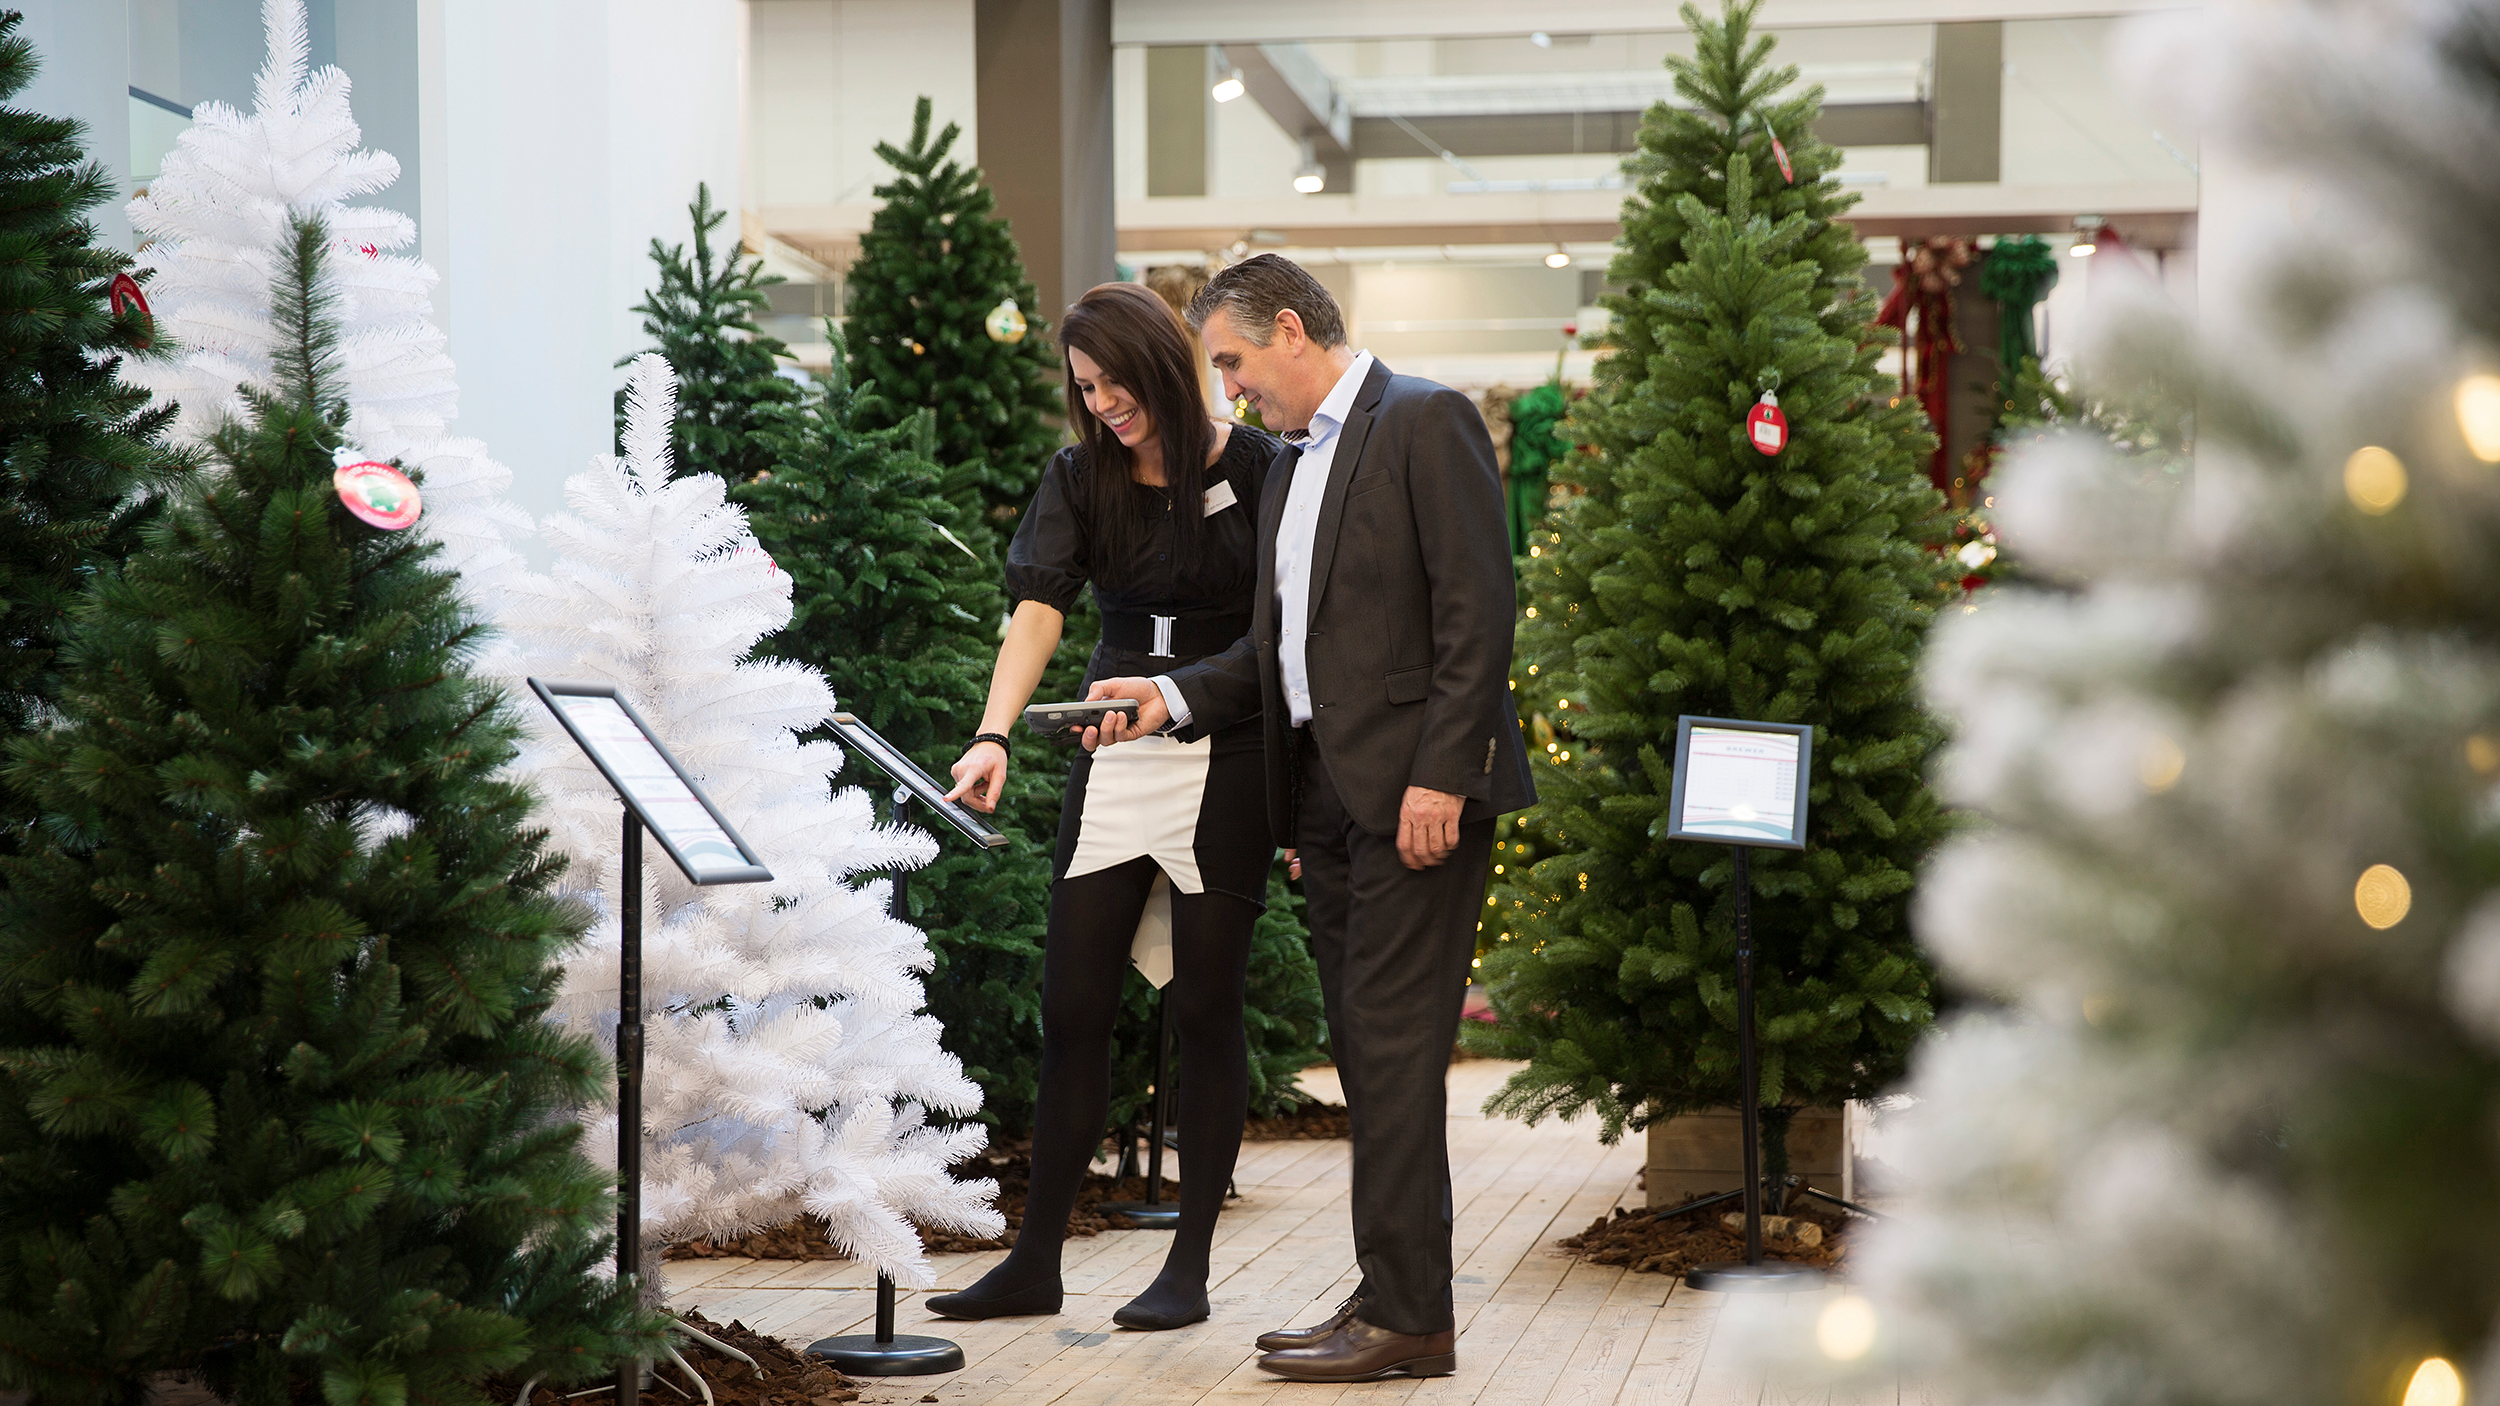 Christmasworld: Sales talk exhibitor with a visitor